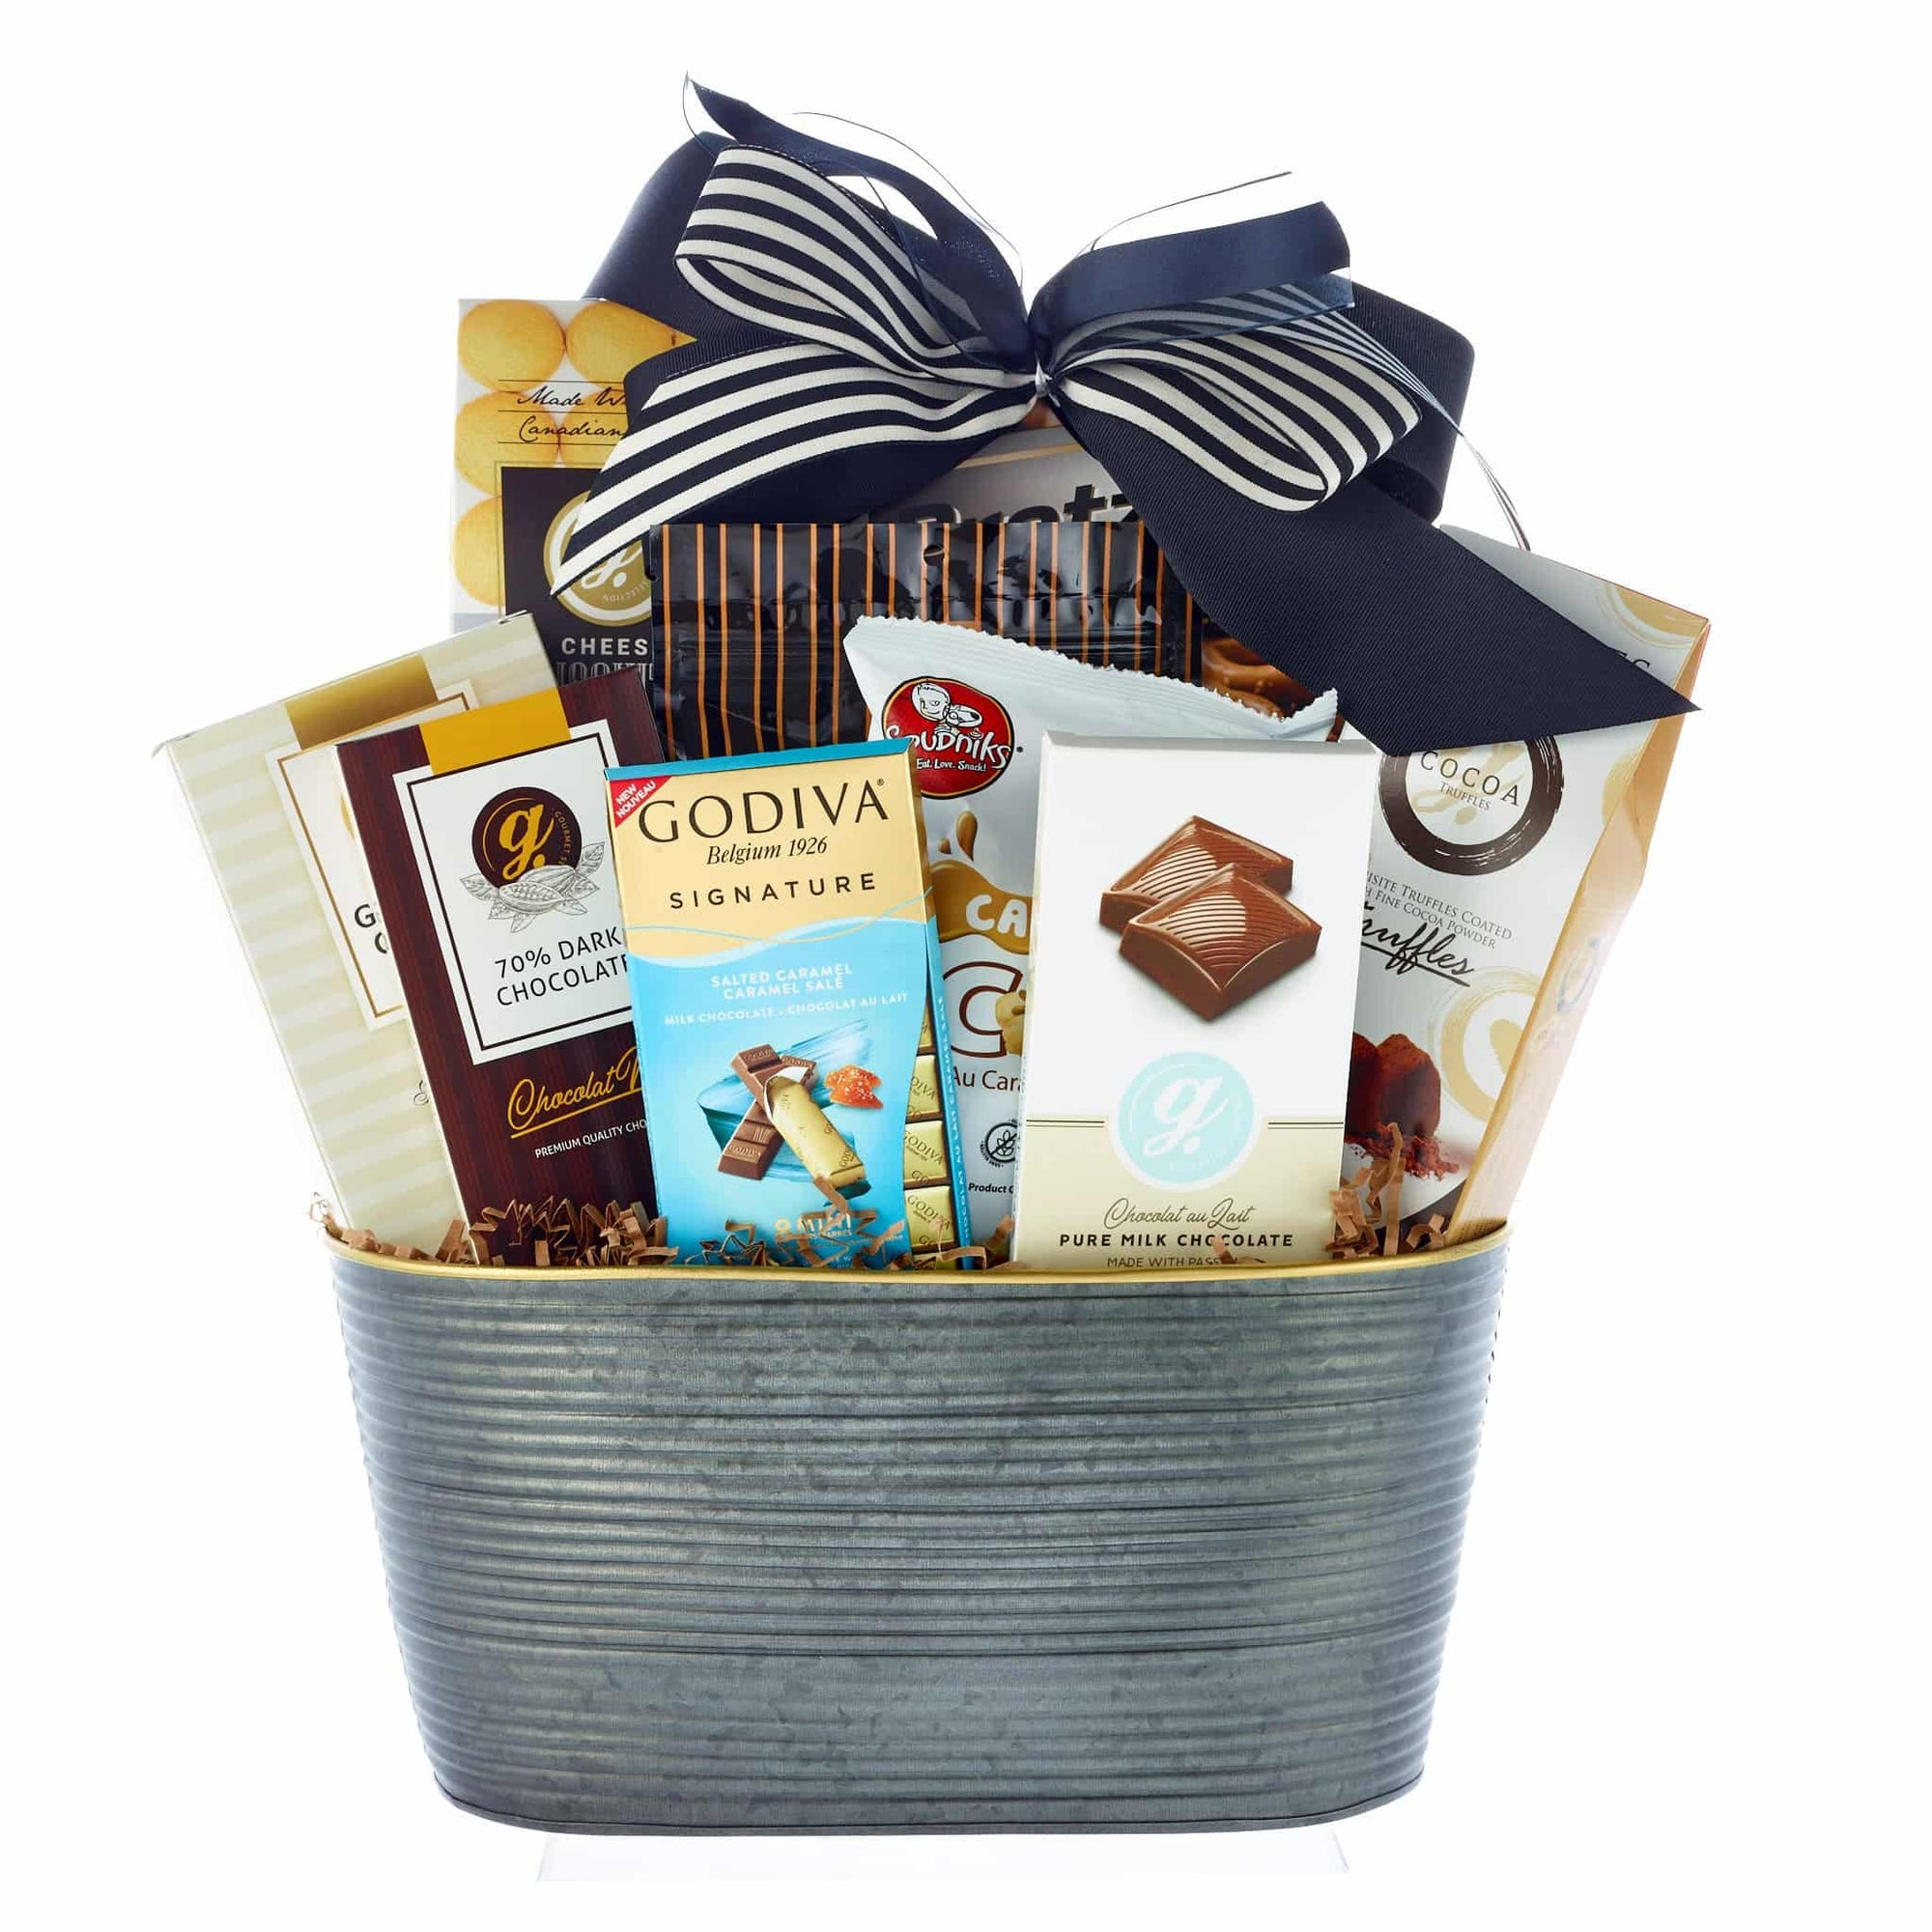 Sincerest sympathies gift basket